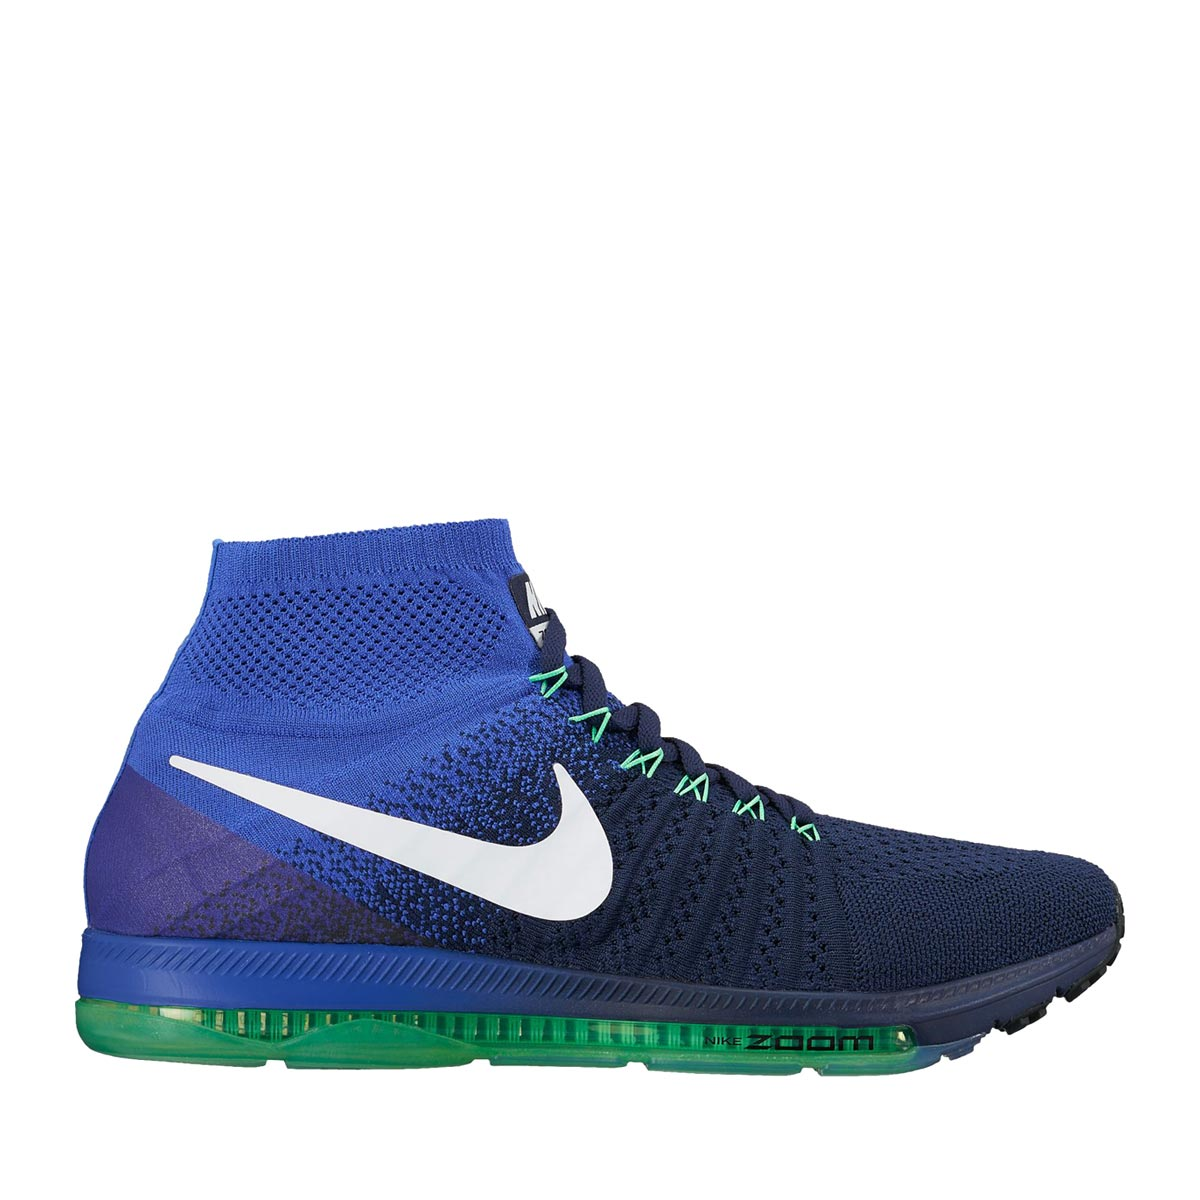 NIKE ZOOM ALL OUT FLYKNIT(ナイキ ズーム オール アウト フライニット)COLLEGE NAVY/WHITE-PARAMOUNT BLUE-ELECTRO GREEN-BLACK【メンズ スニーカー】17SP-I